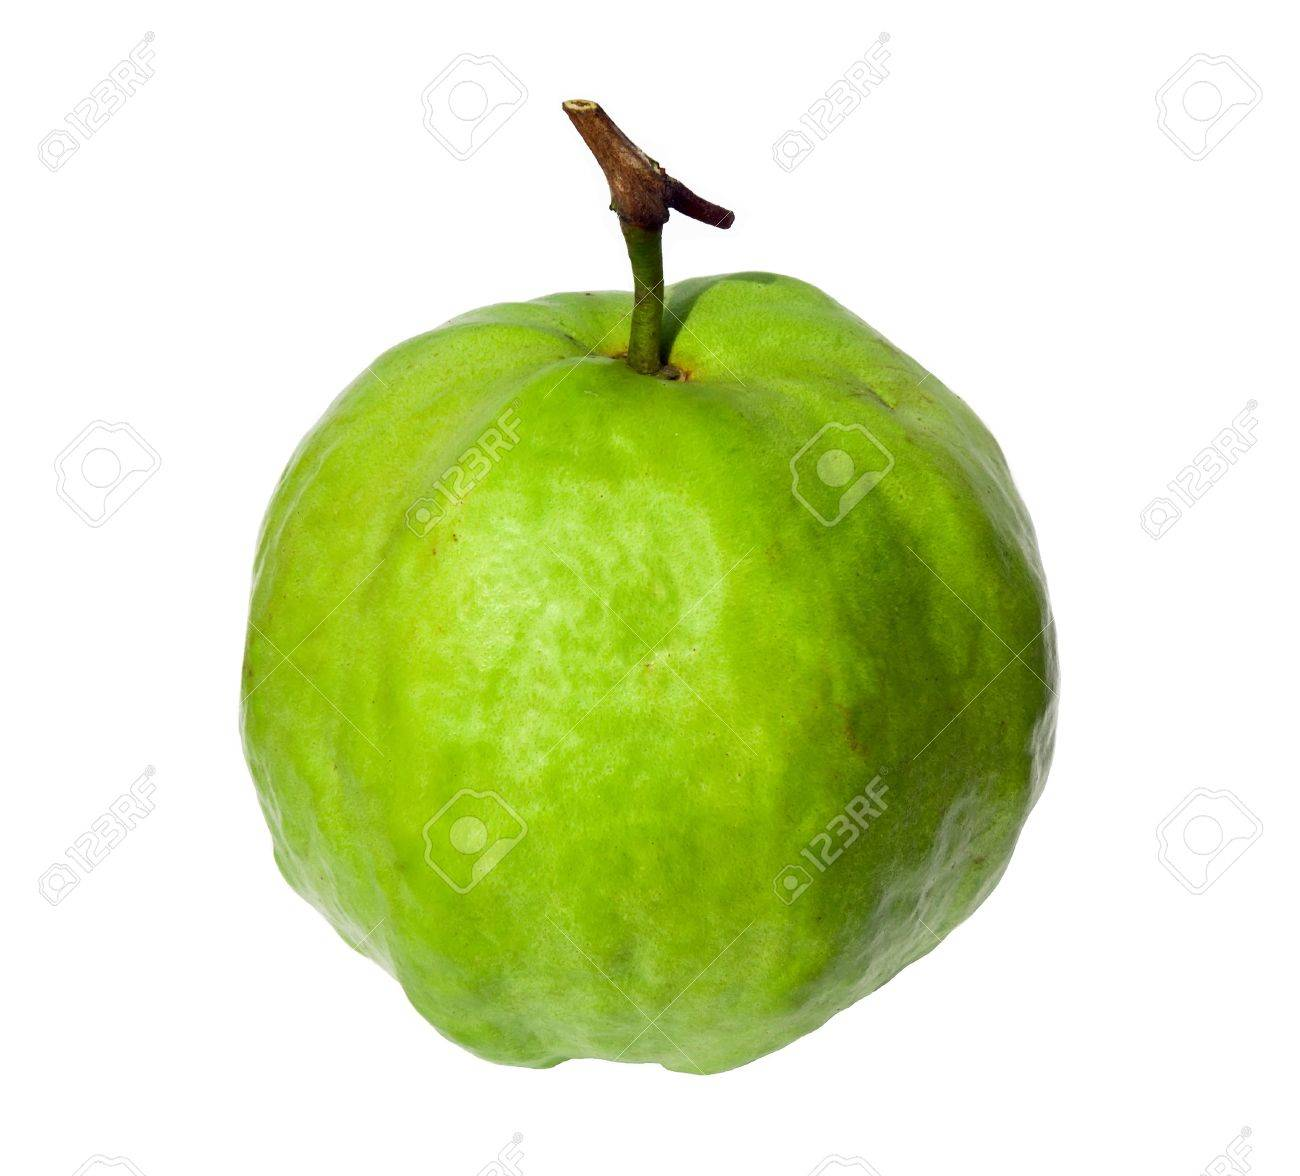 guava fruit images u0026 stock pictures royalty free guava fruit